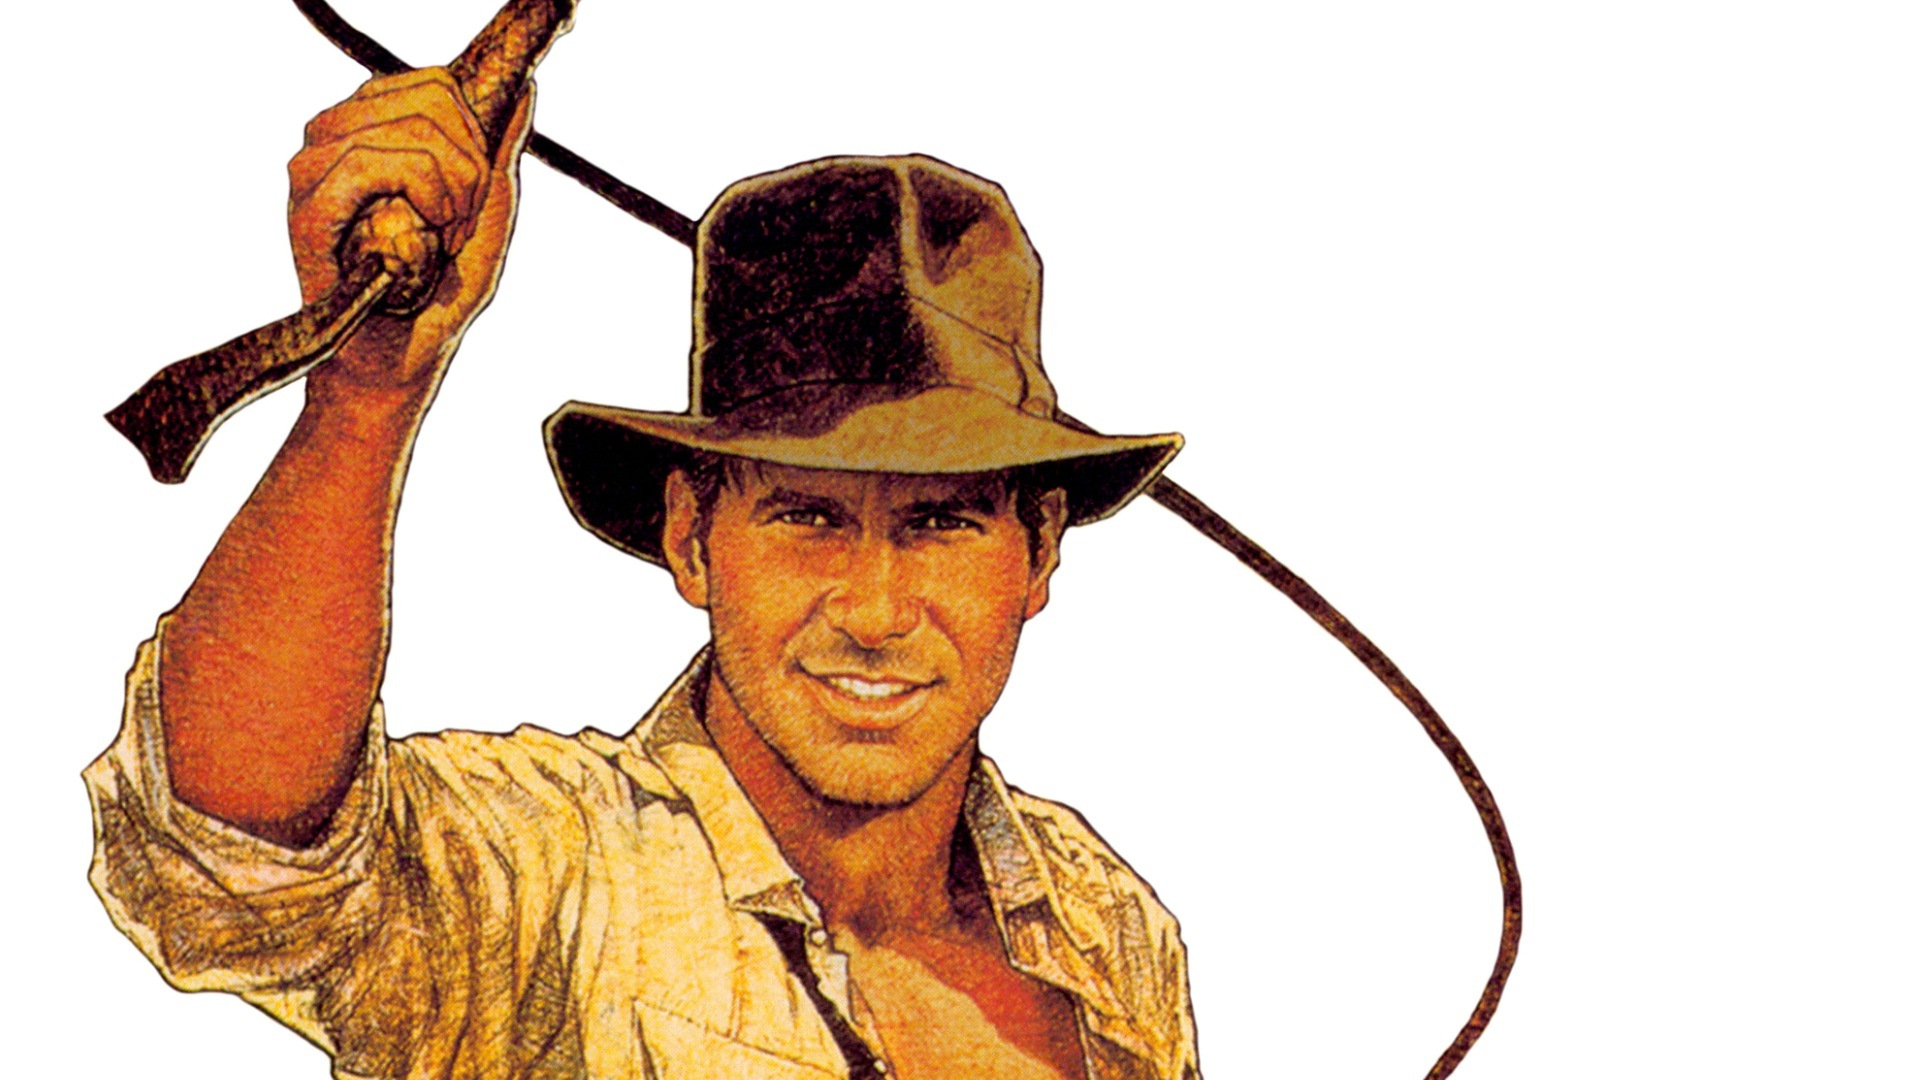 Indiana Jones clipart Art Jones Clipart Indiana Clipart